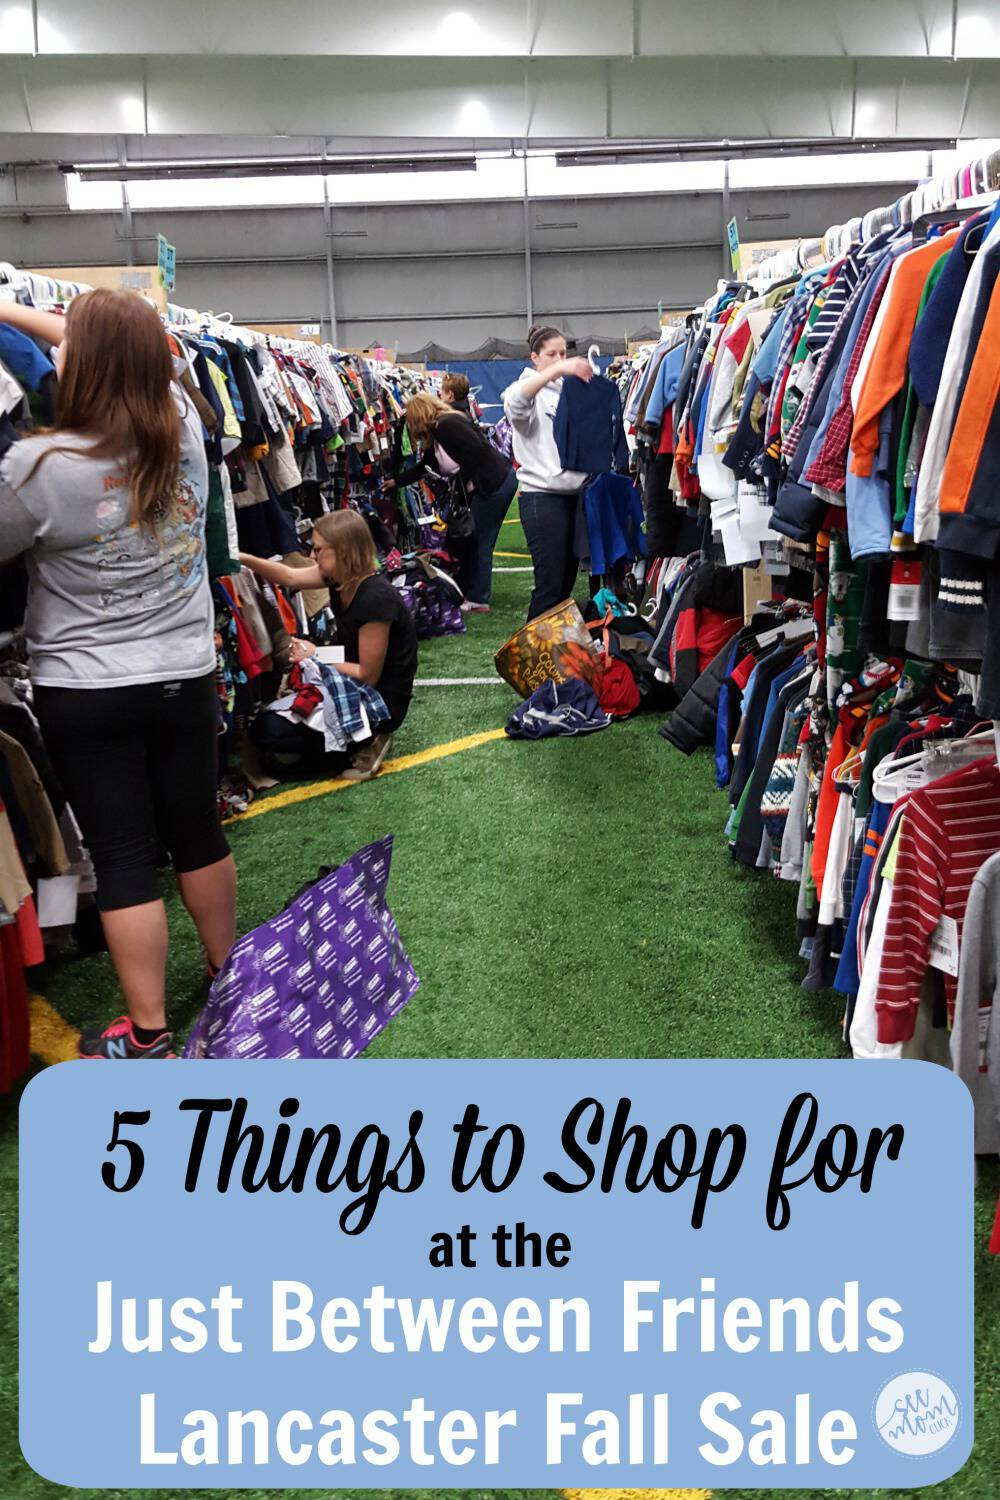 I'm addicted to JBF consignment sales. I get the best things for my kids! Here are my top 5 things to shop for at Just Between Friends Lancaster fall sale!